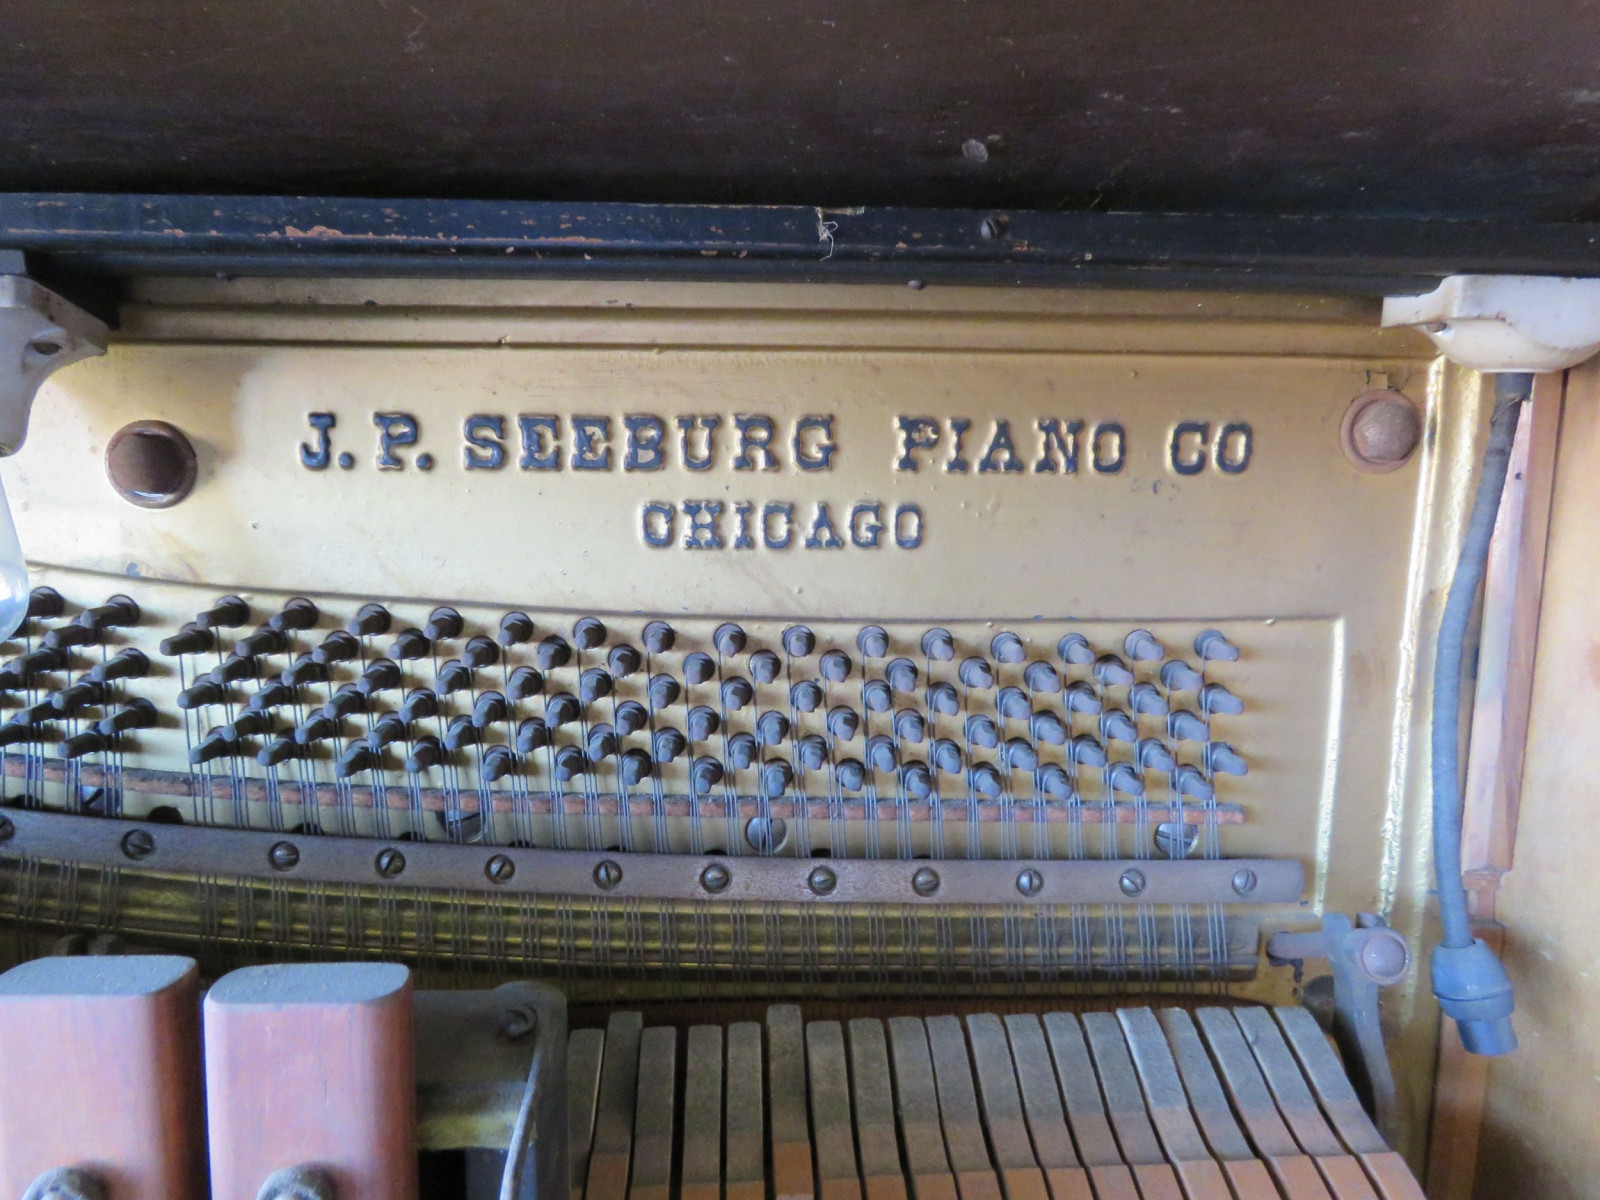 Seeburg Player Piano for project or Parts - Image 3